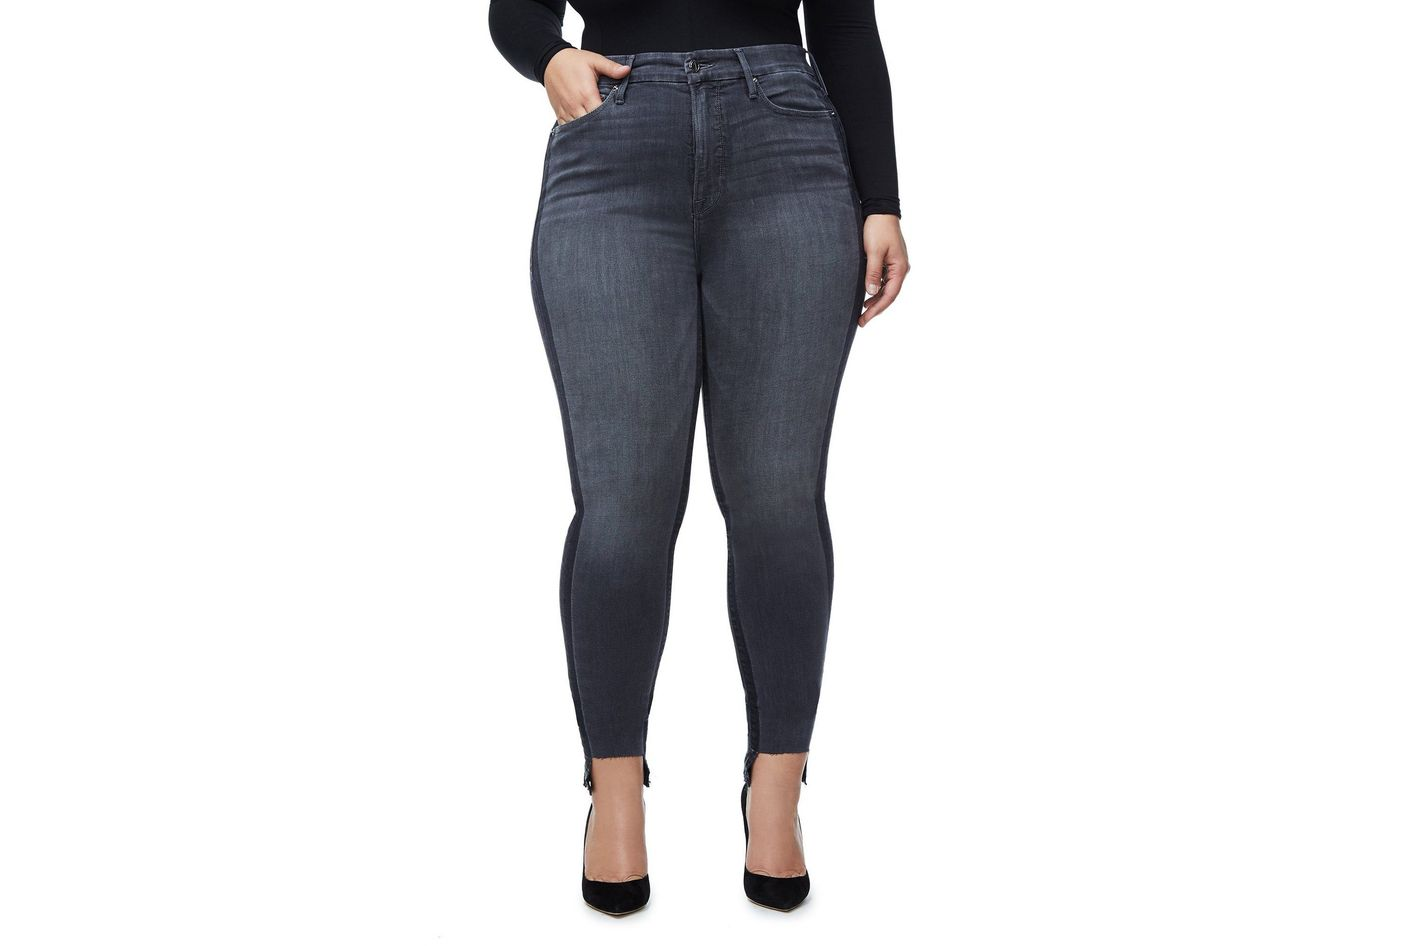 4a98e5b838a Best plus-size jeans for petite women. Good American Good Legs Shadow  Tunnel Hem